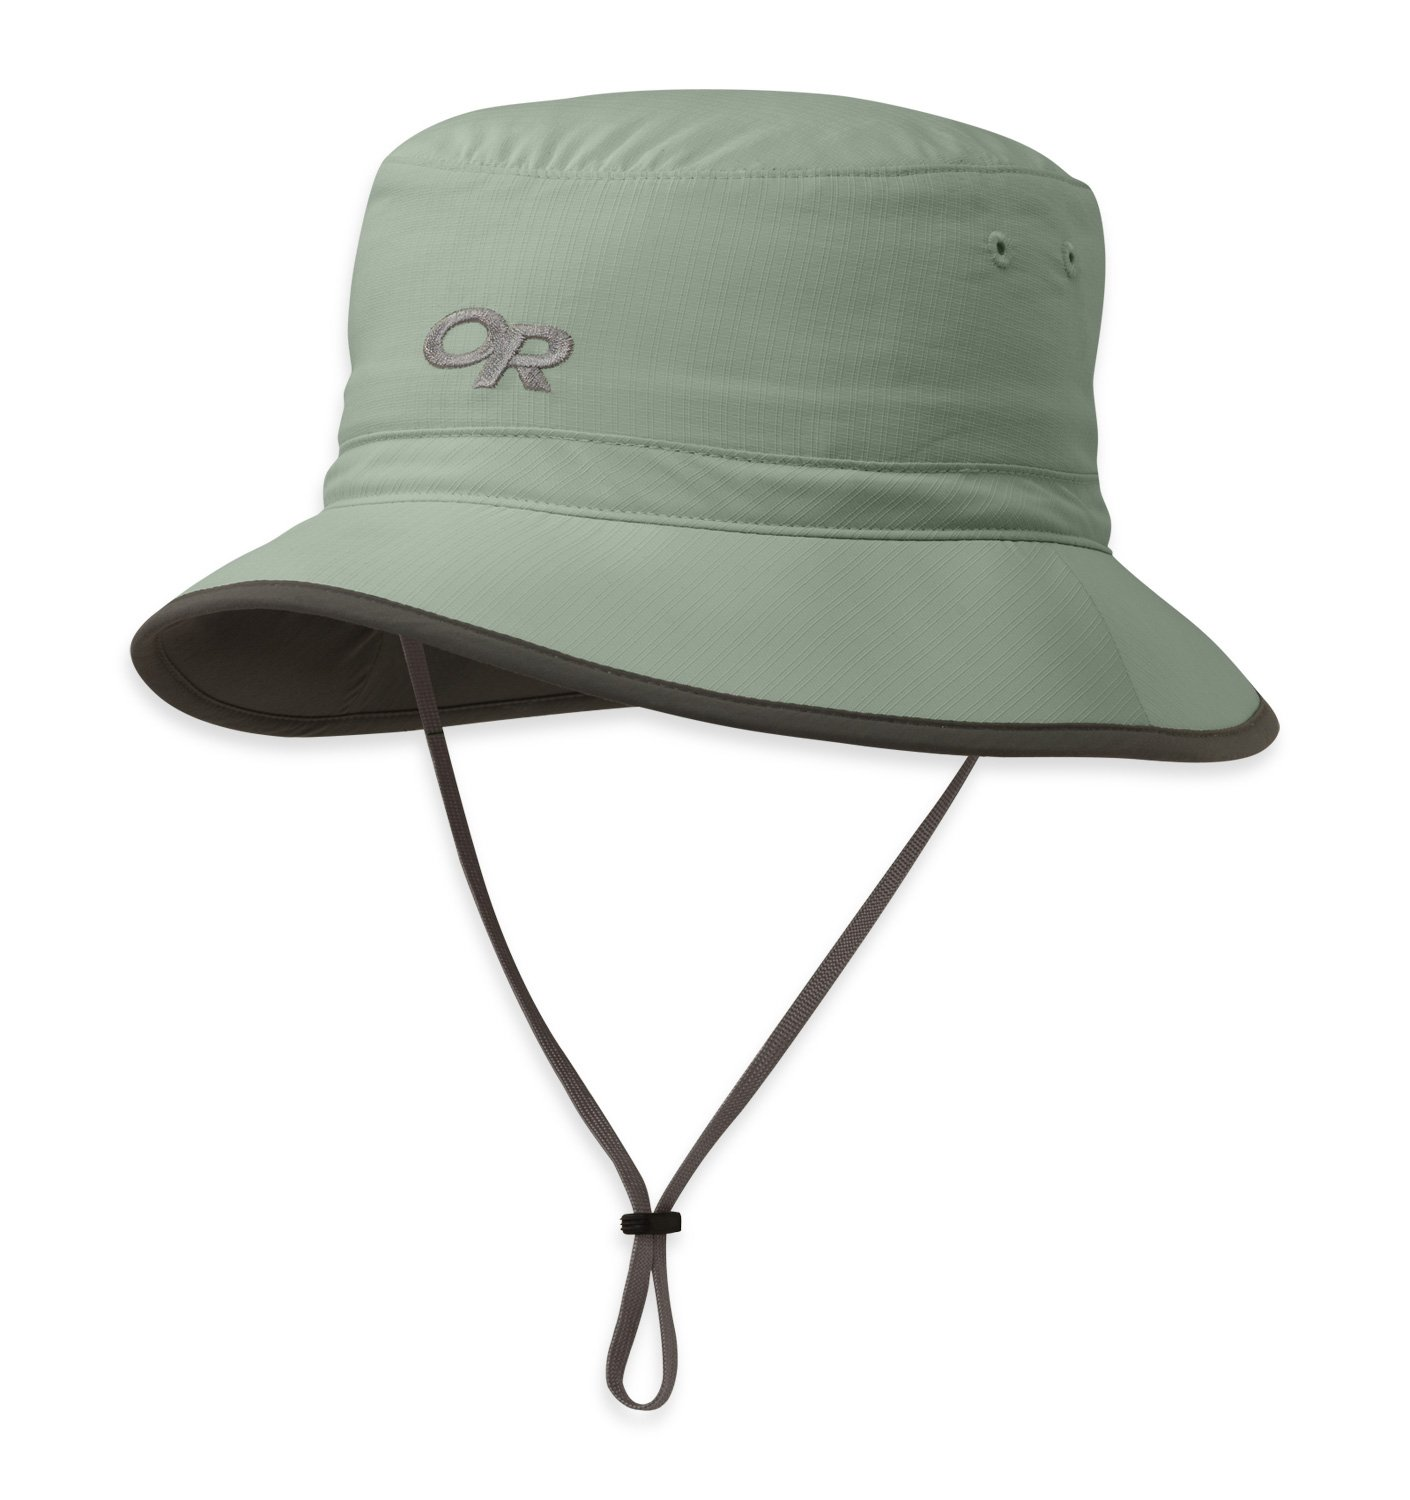 Outdoor Research Sun Bucket, Sage Green, Medium by Outdoor Research